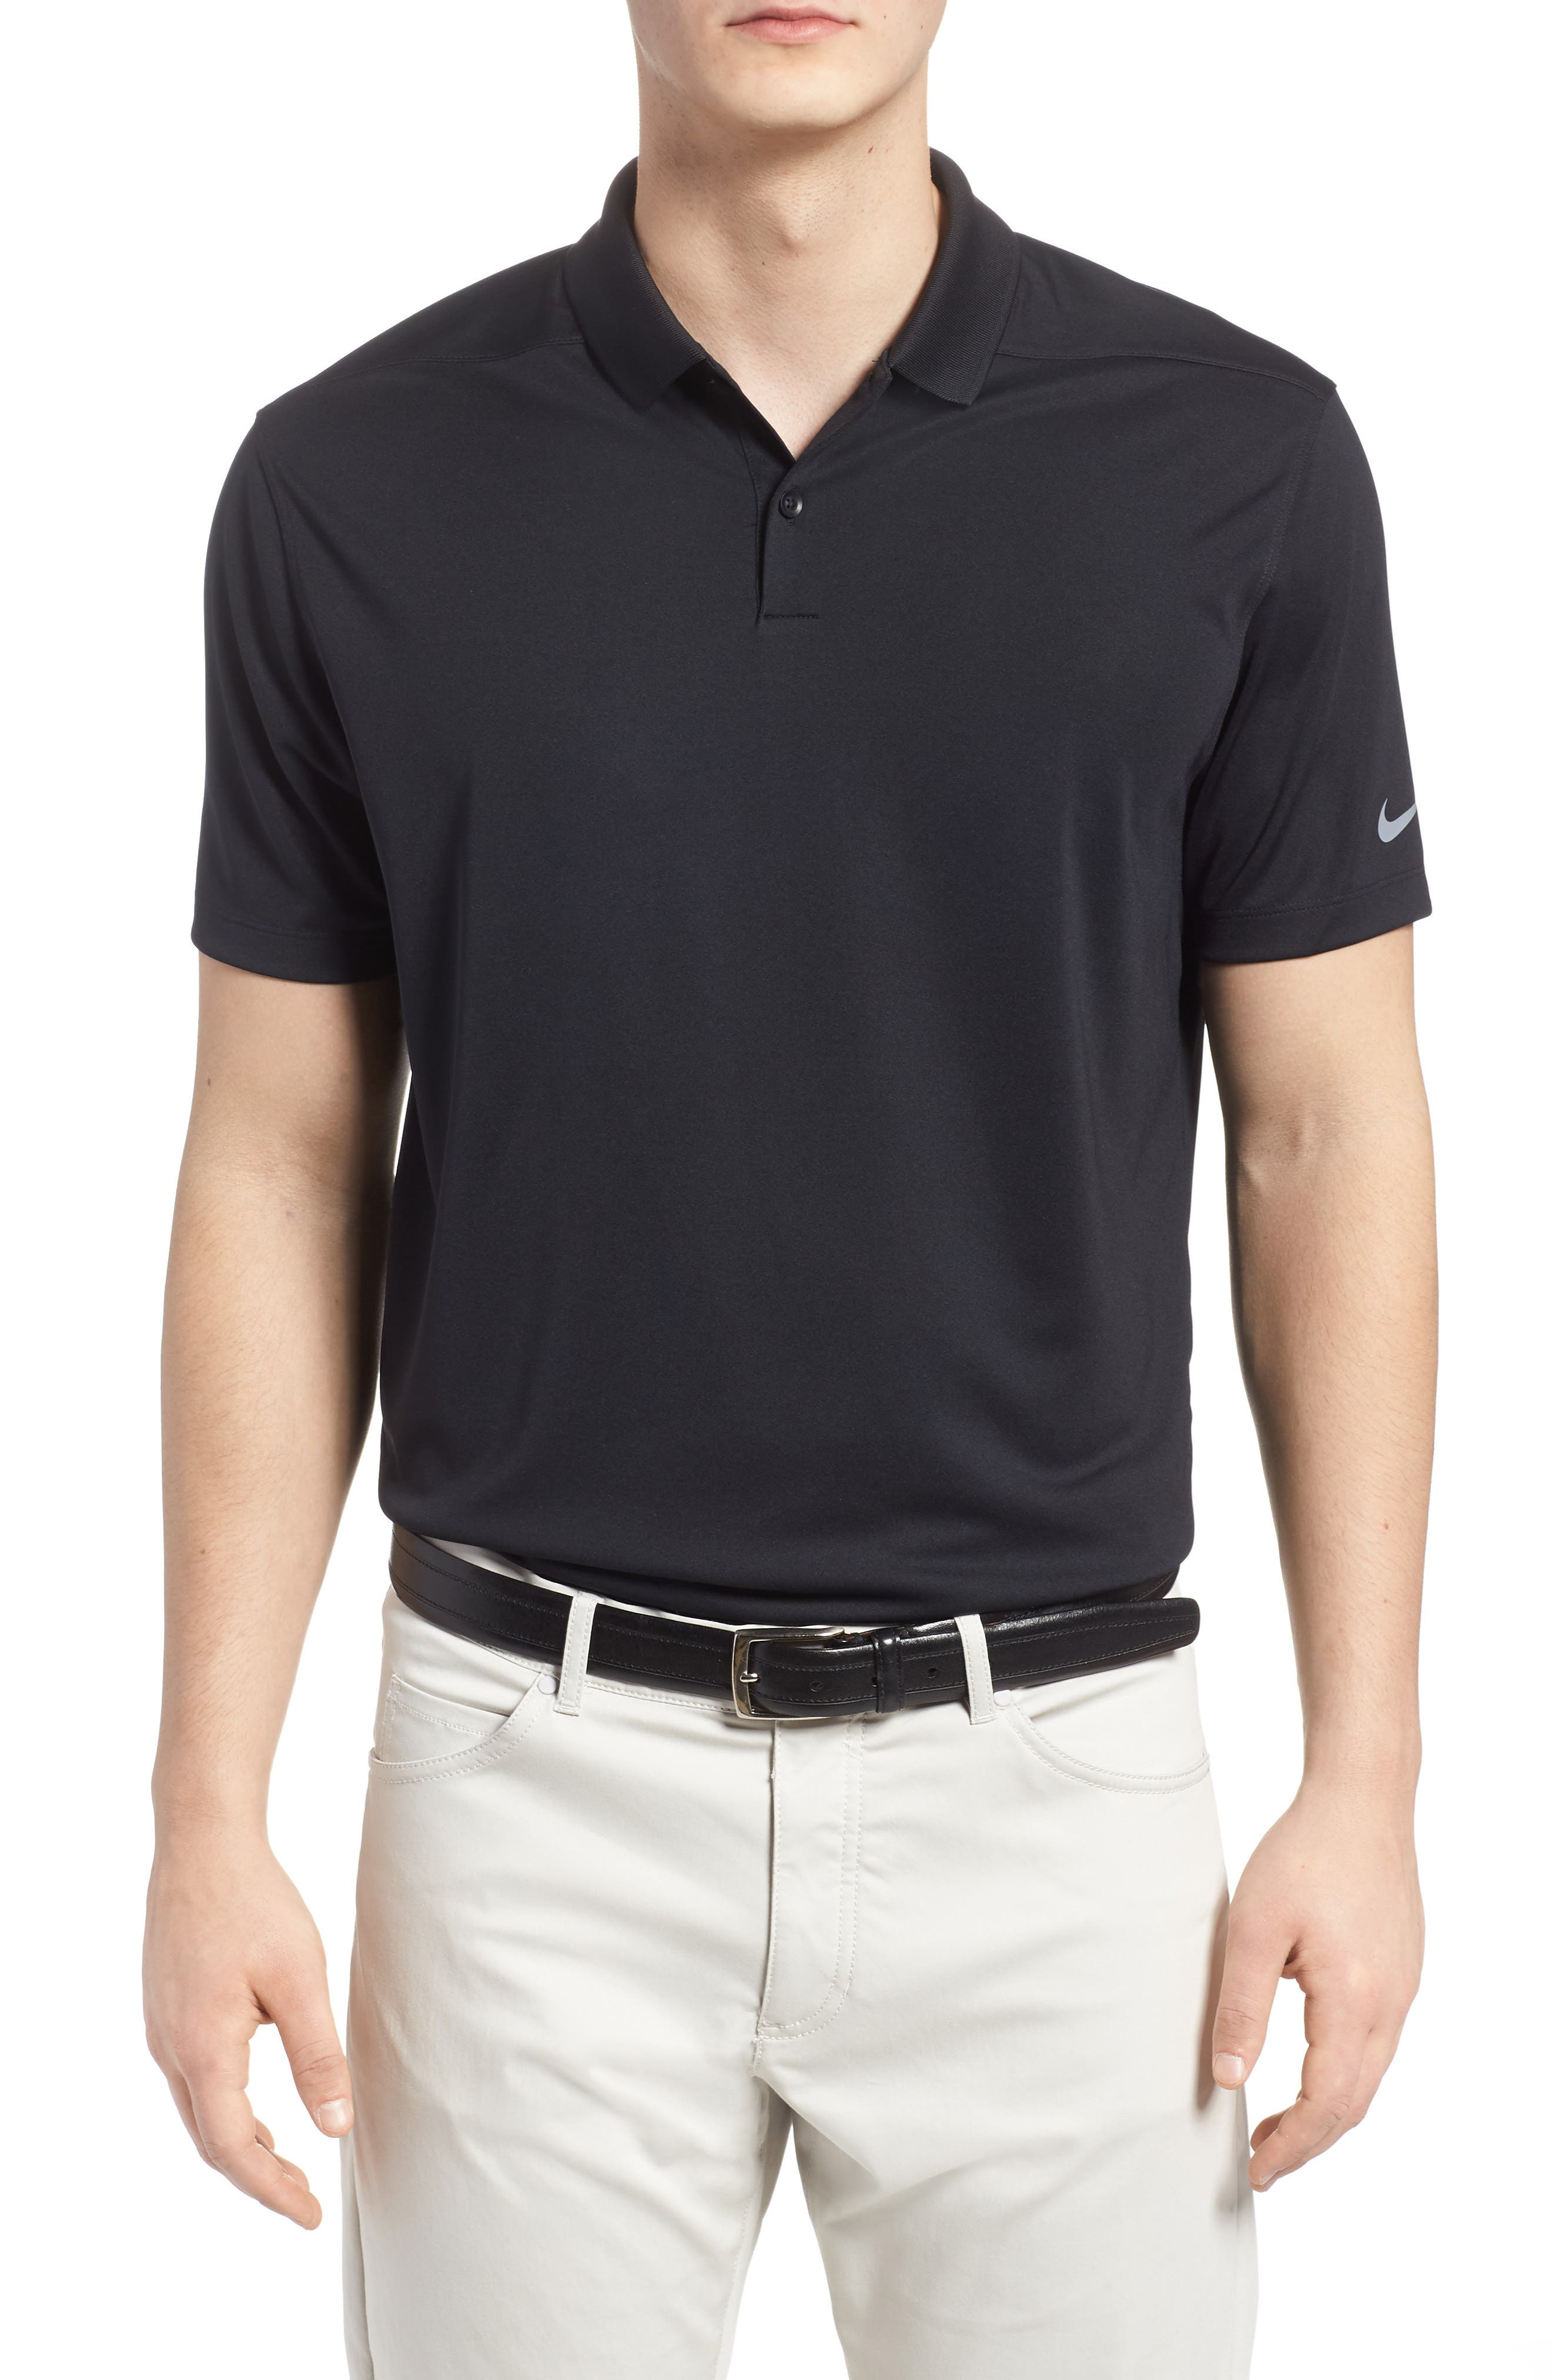 NIKE Victory Dri-FIT Golf Polo, Main, color, BLACK/ GUNSMOKE